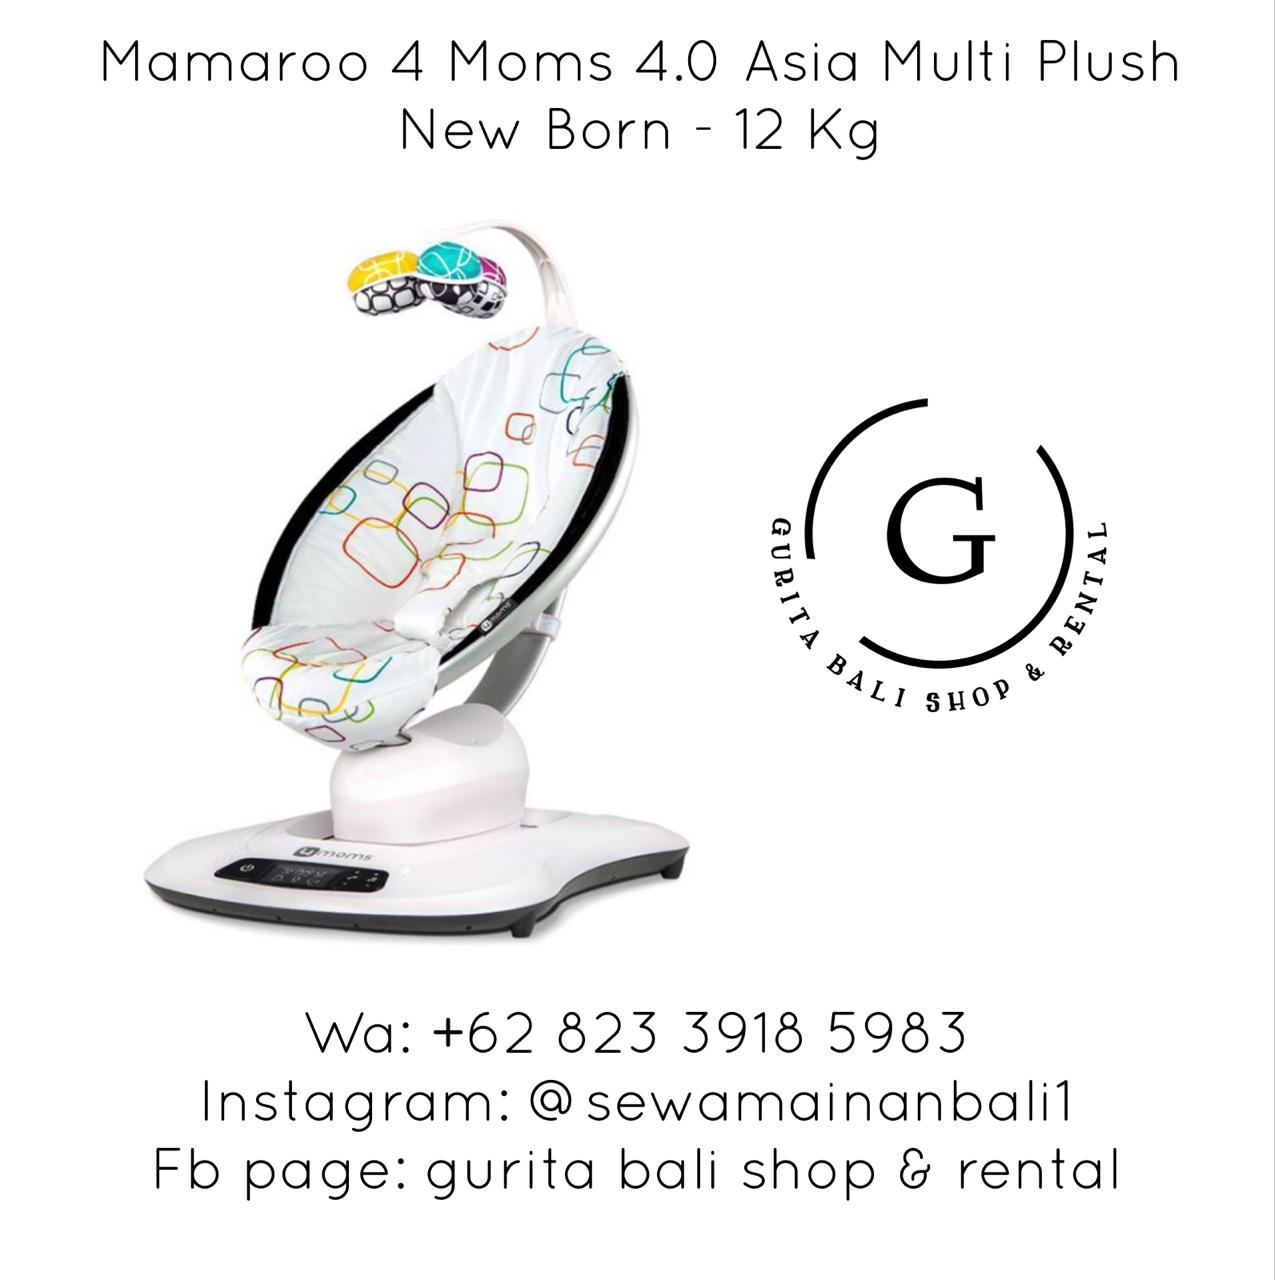 MAMAROO 4MOMS 4.0 ASIA MULTI PLUSH